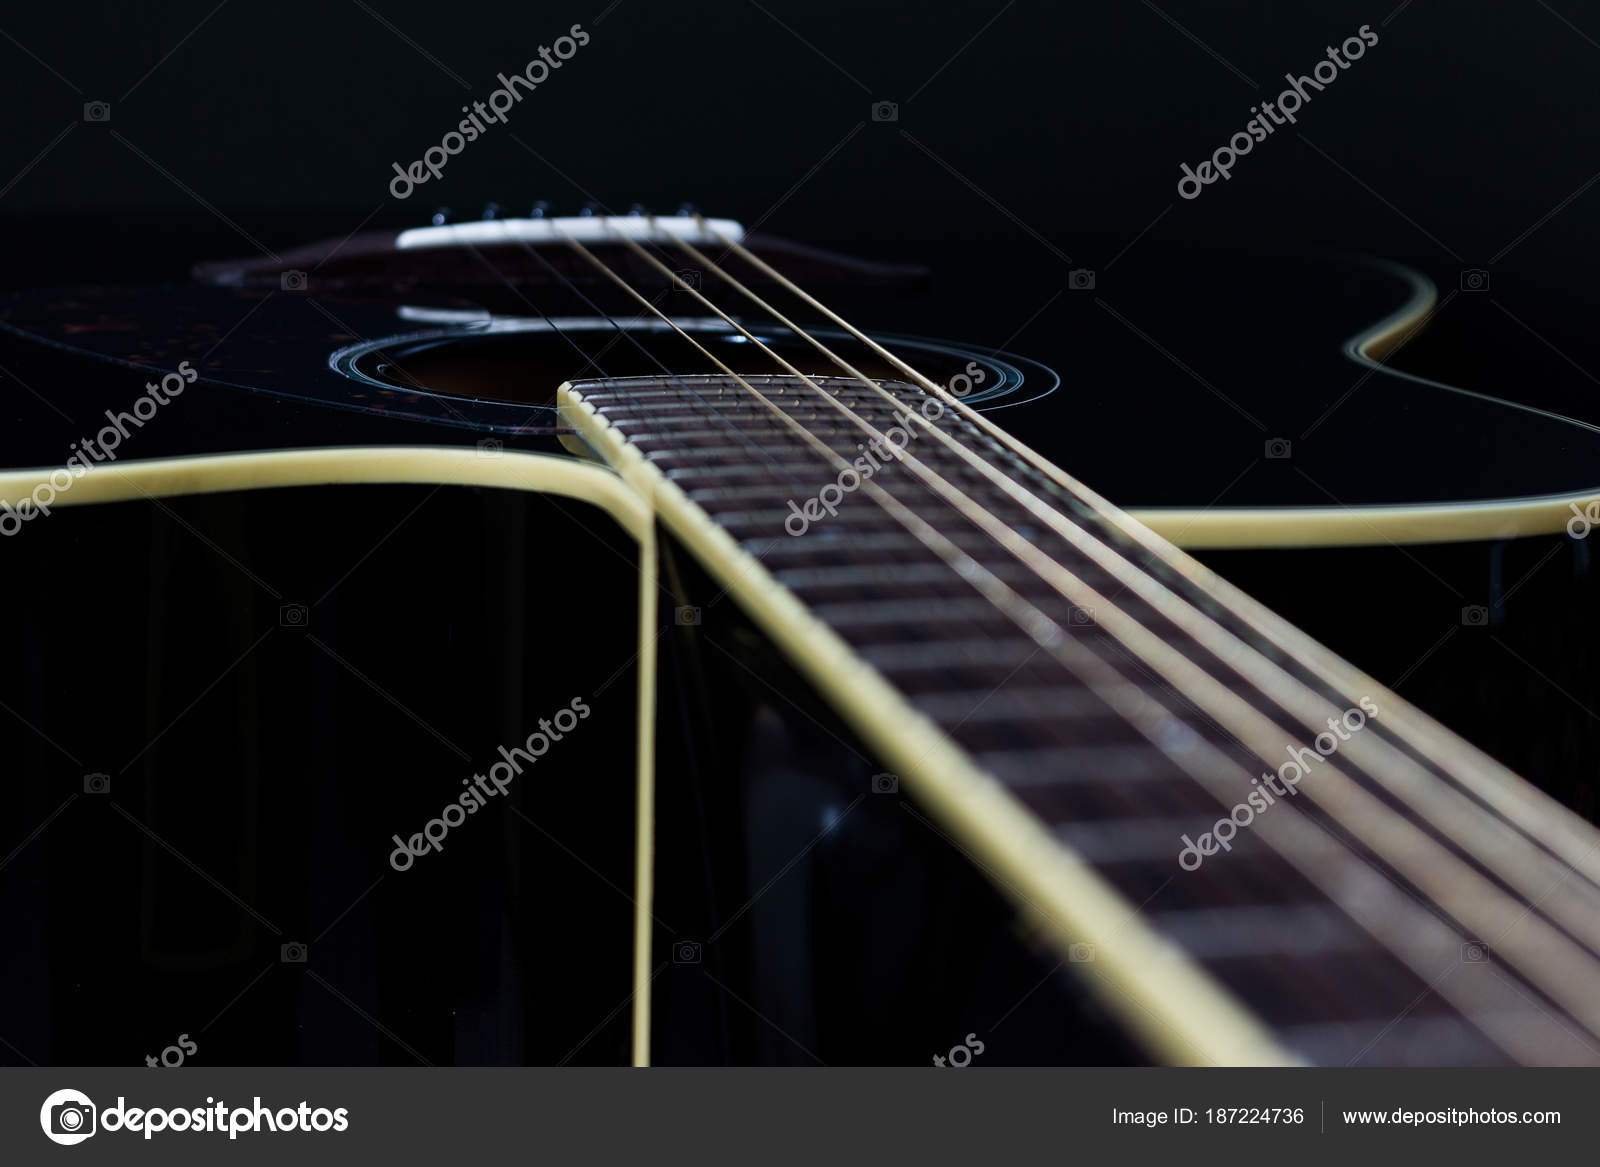 Acoustic Guitar Black Background Stock Photo C Carlo Fornitano